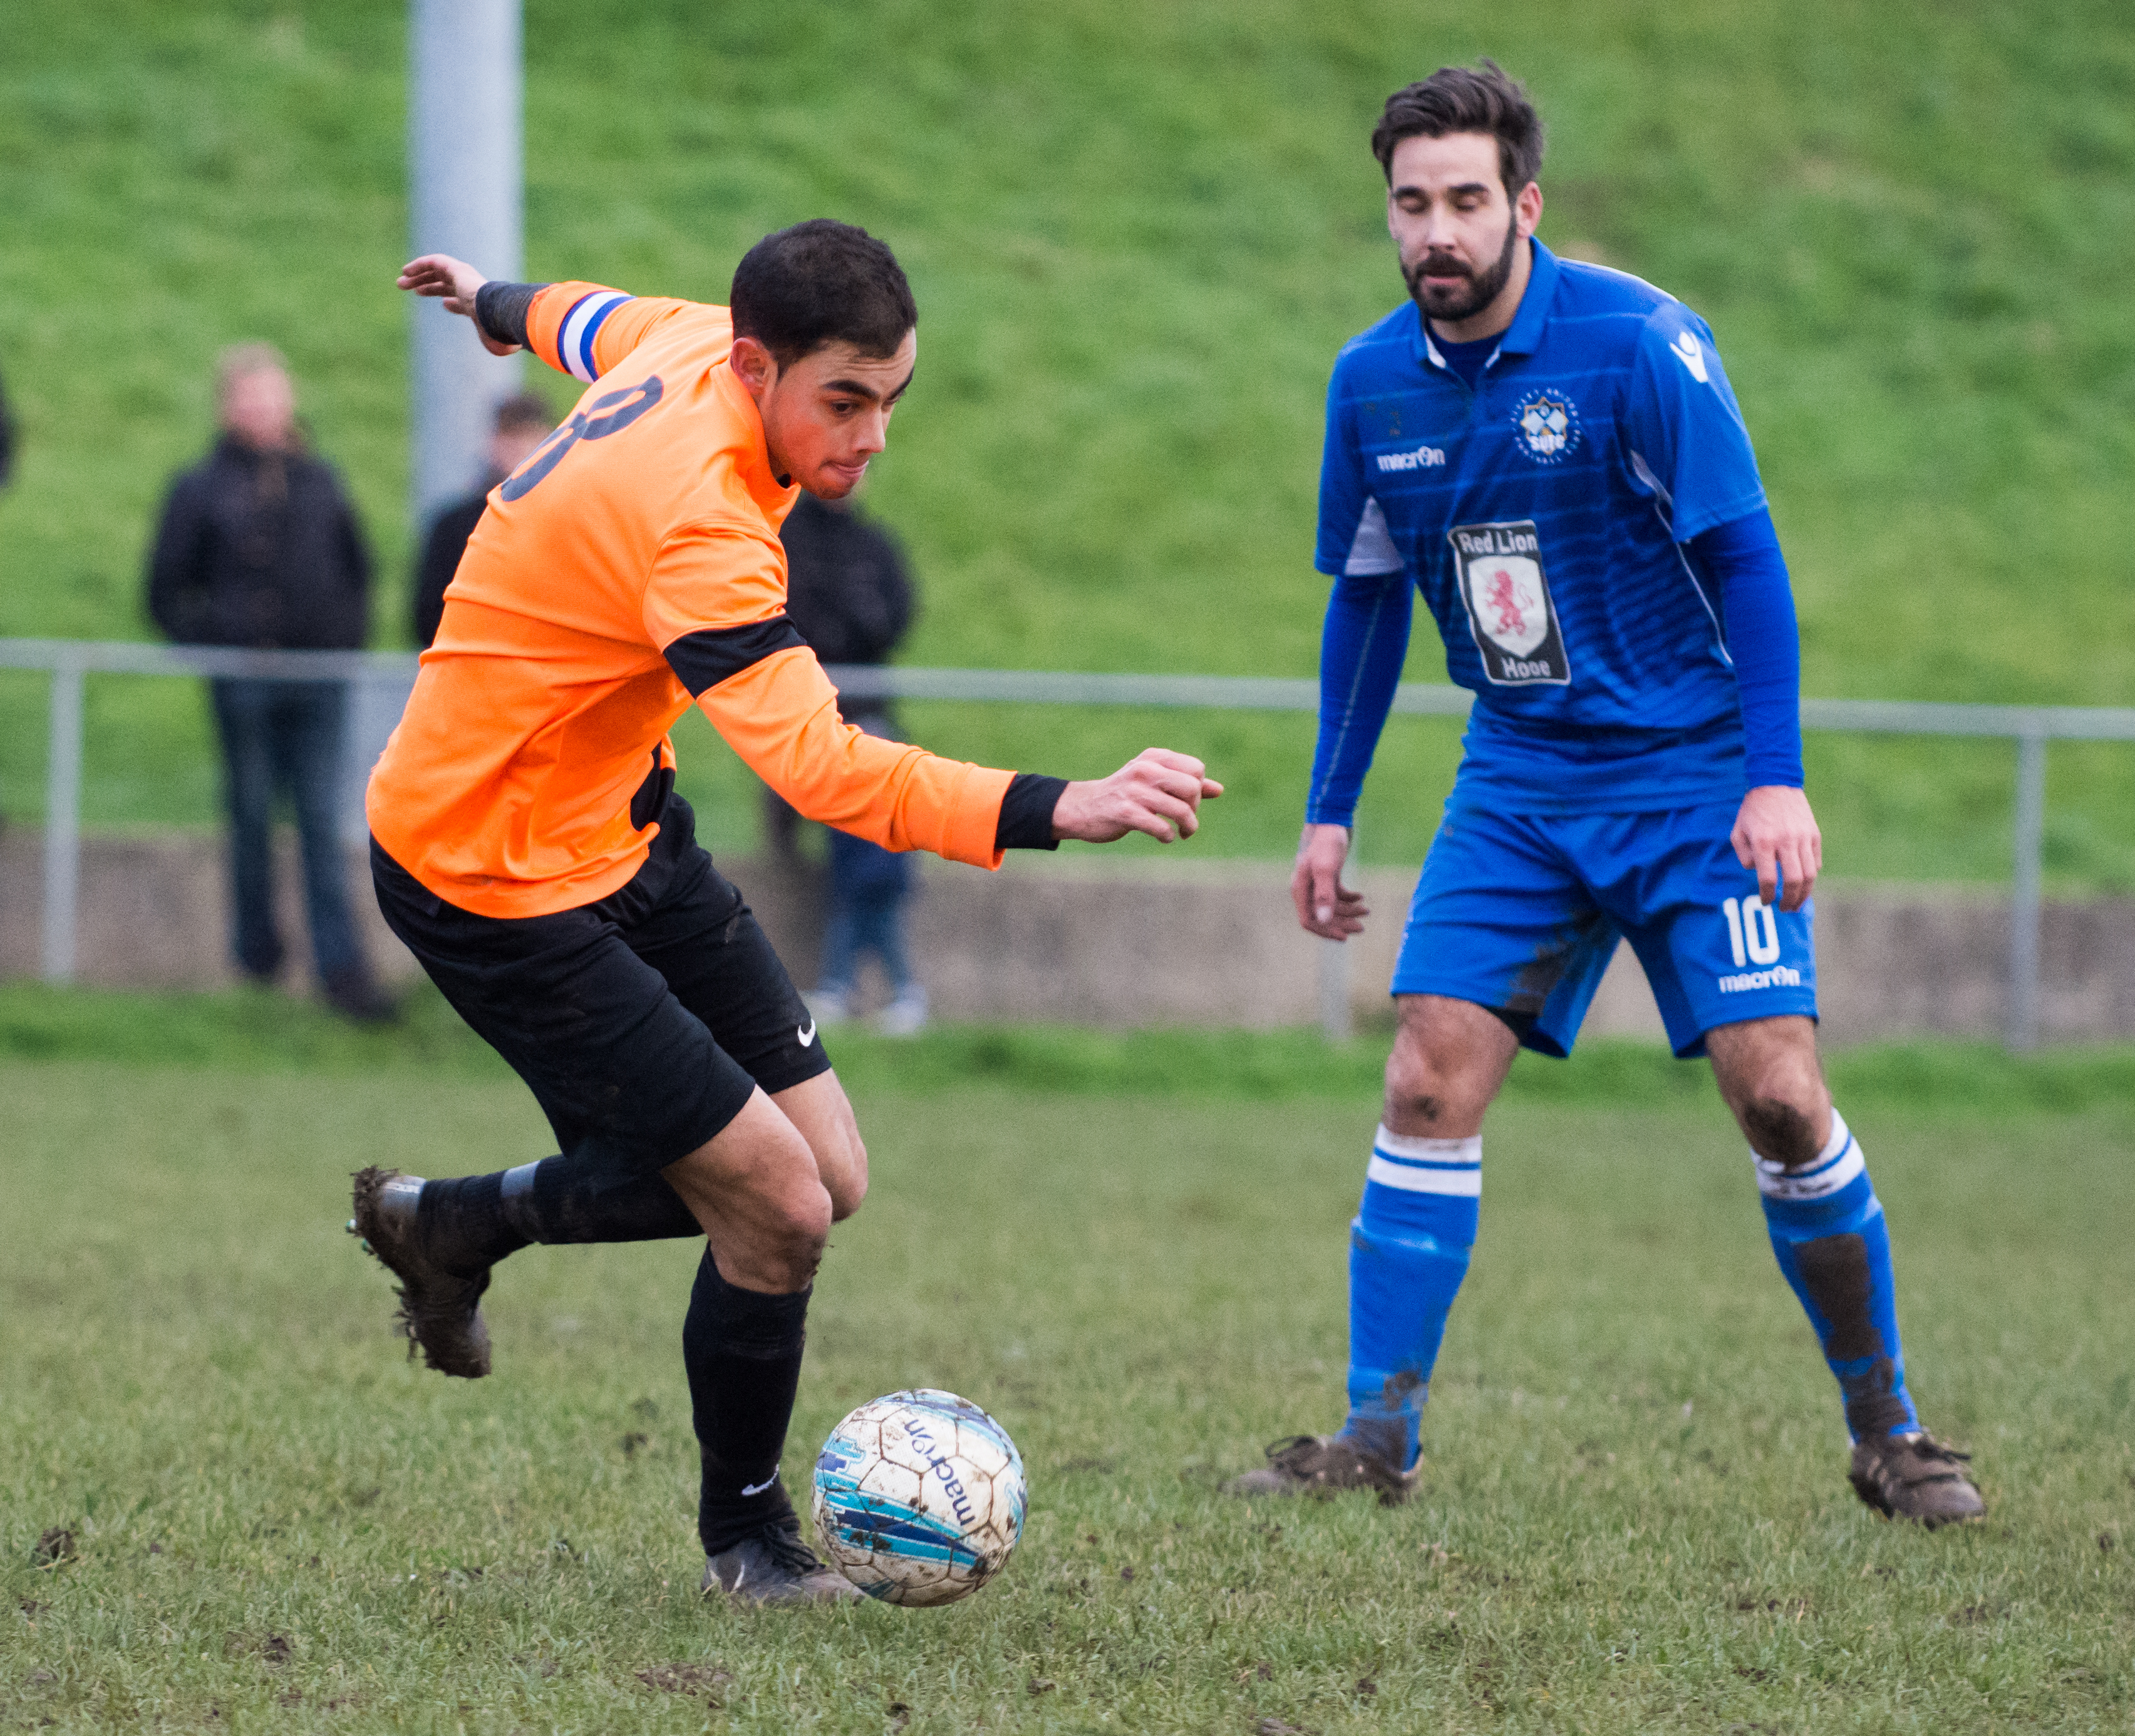 Mile Oak Res vs Sidley United 09.12.17 31